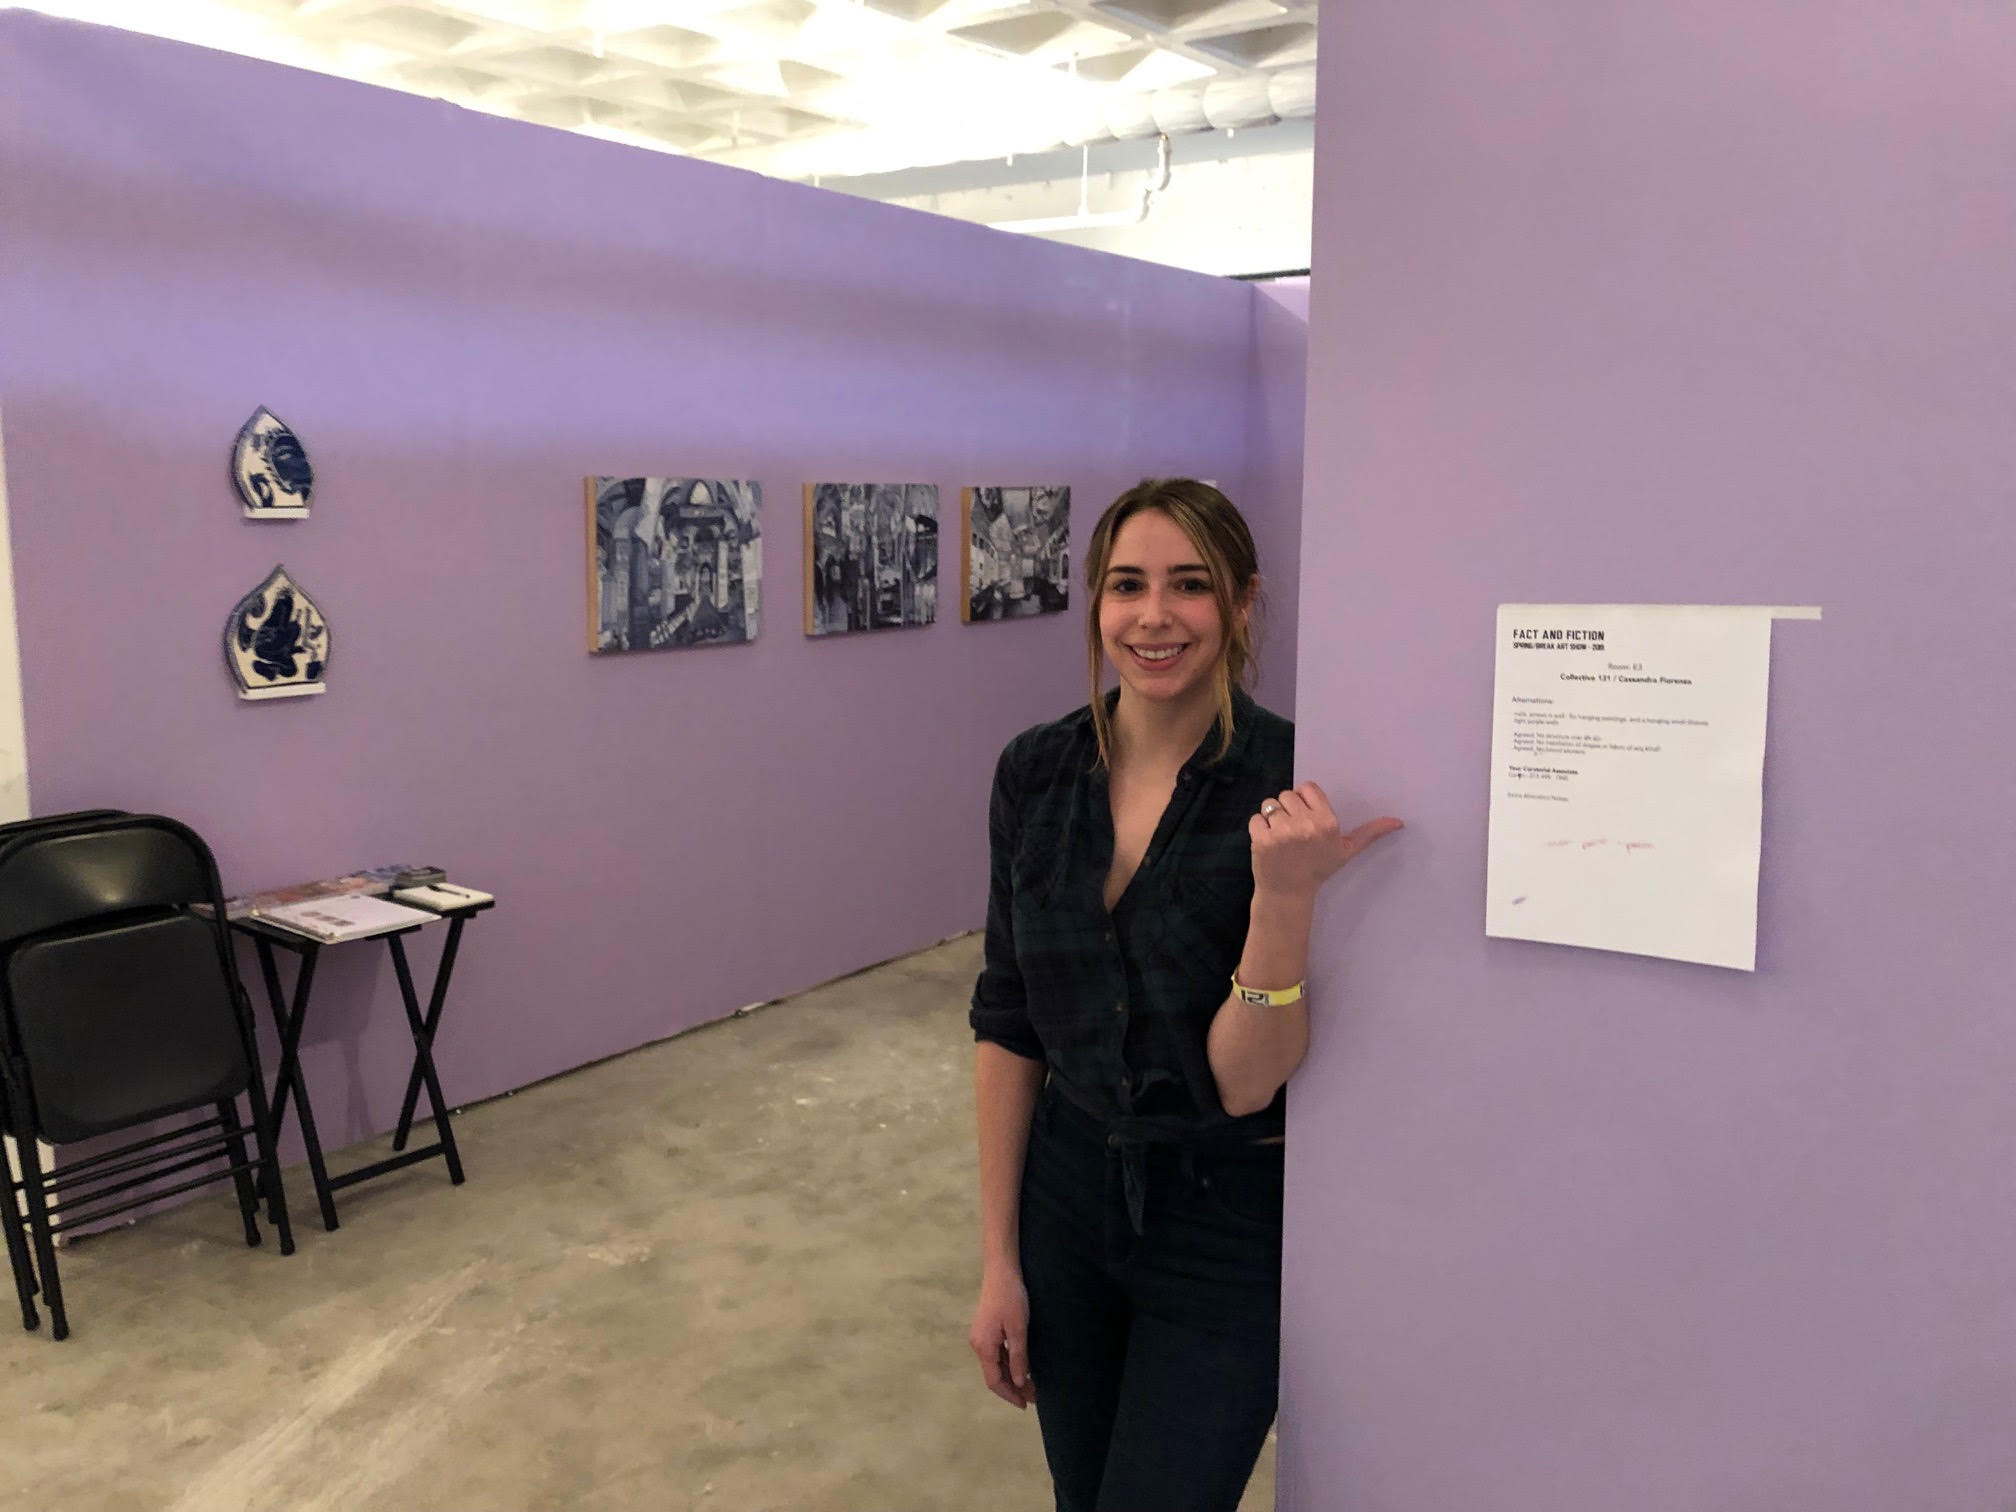 Founder Cassie Fiorenza installing our booth at SPRING/BREAK Art Show NY 2019